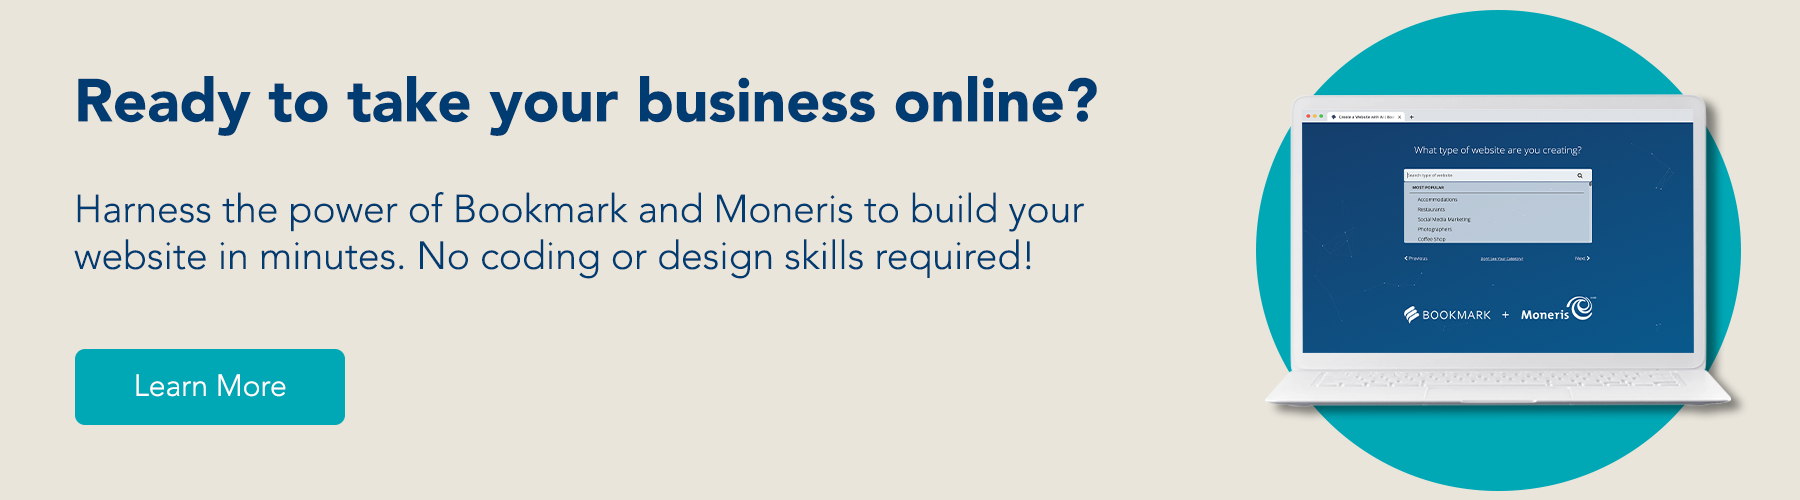 Ready to take your business online? Harness the power of Bookmark and Moneris to build your website in minutes. No coding or design skills required! Learn more.